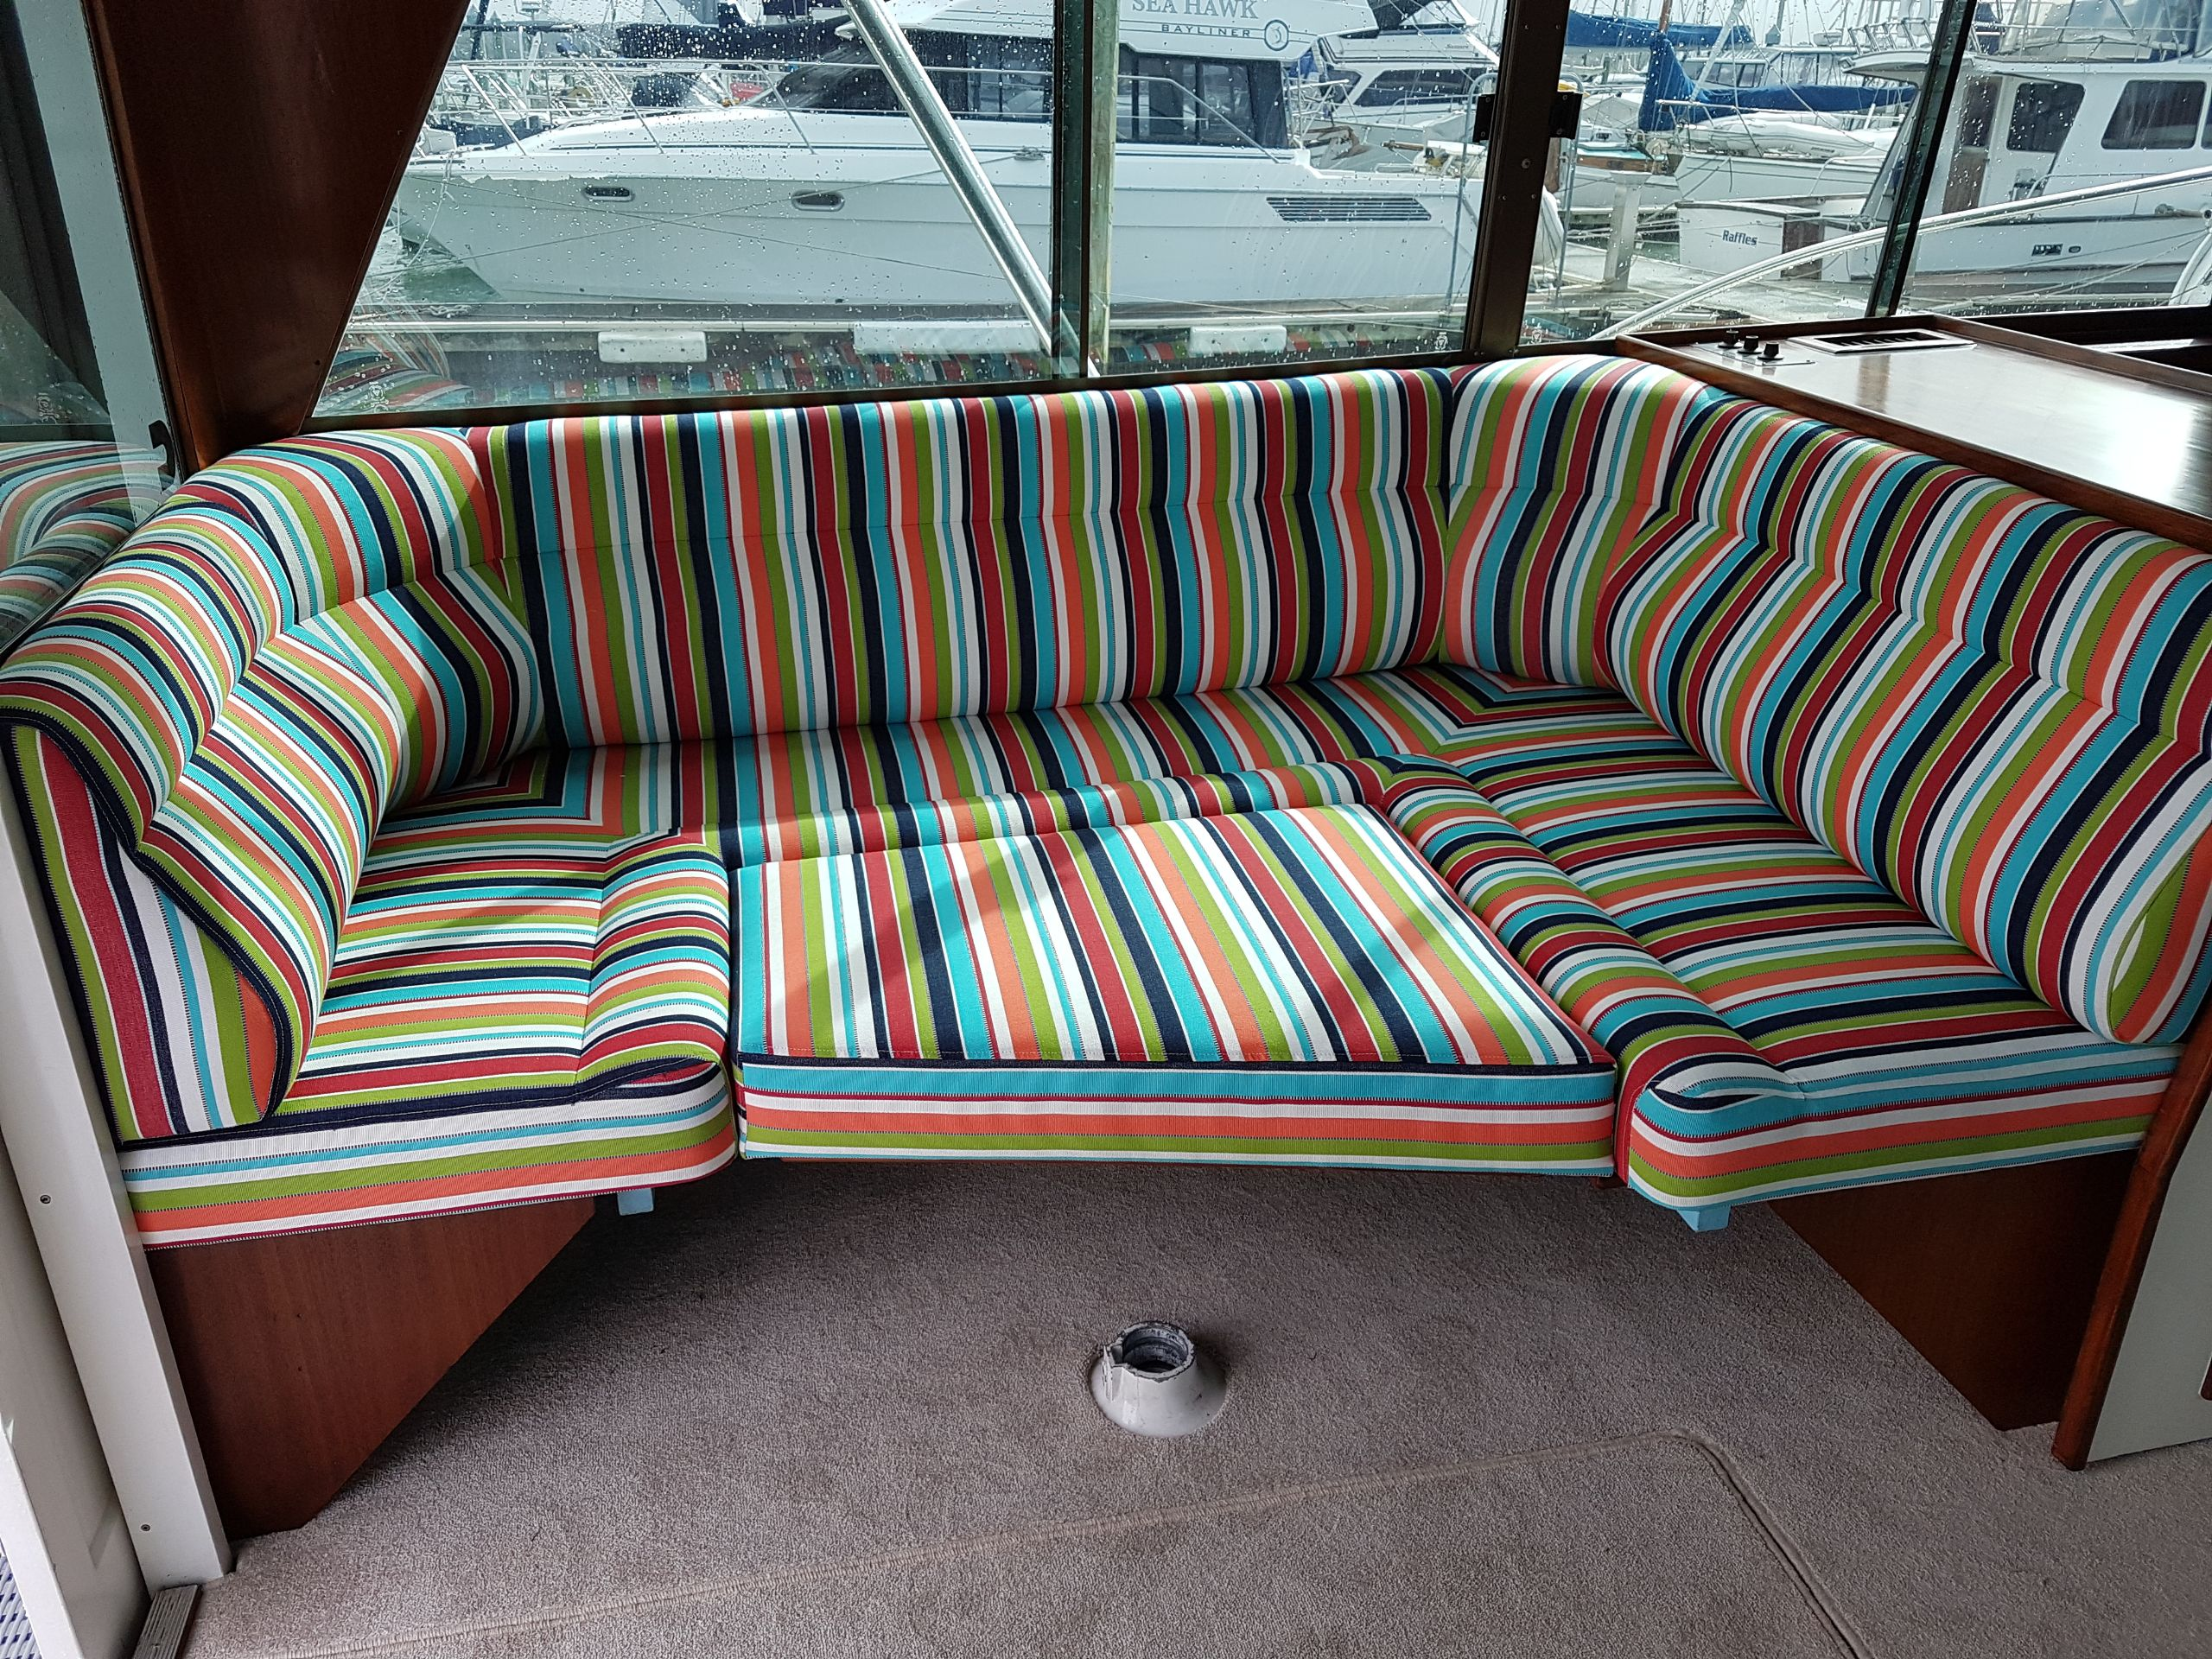 Upholstery Design And Manufacture Boat Covers Upholstery Clears And Accessories For Marine Residential Commercial And Automotive Auckland West Auckland Upholstery